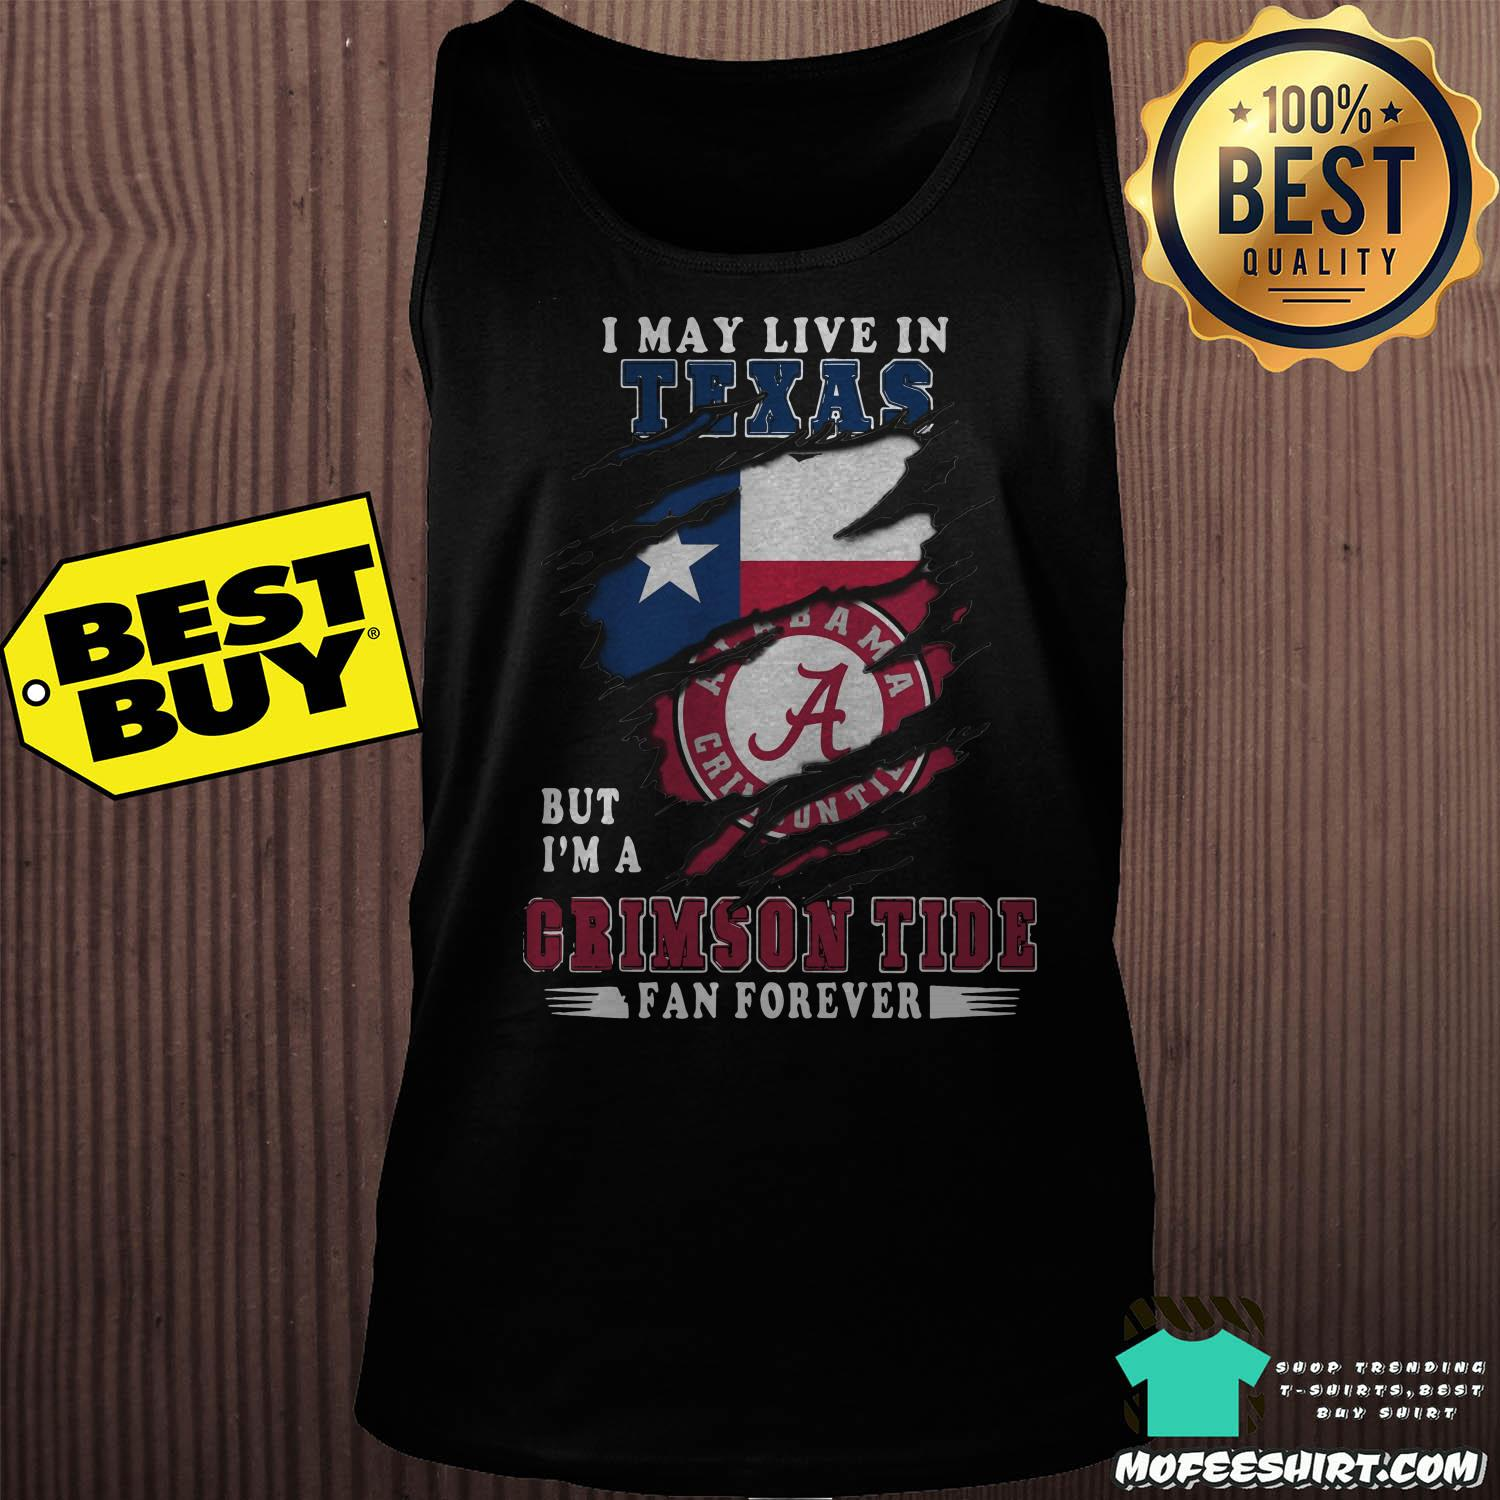 i may live in texas but im a crimson tide fan forever tank top - I May Live In Texas But I'm A Crimson Tide Fan Forever Alabama Crimson Shirt